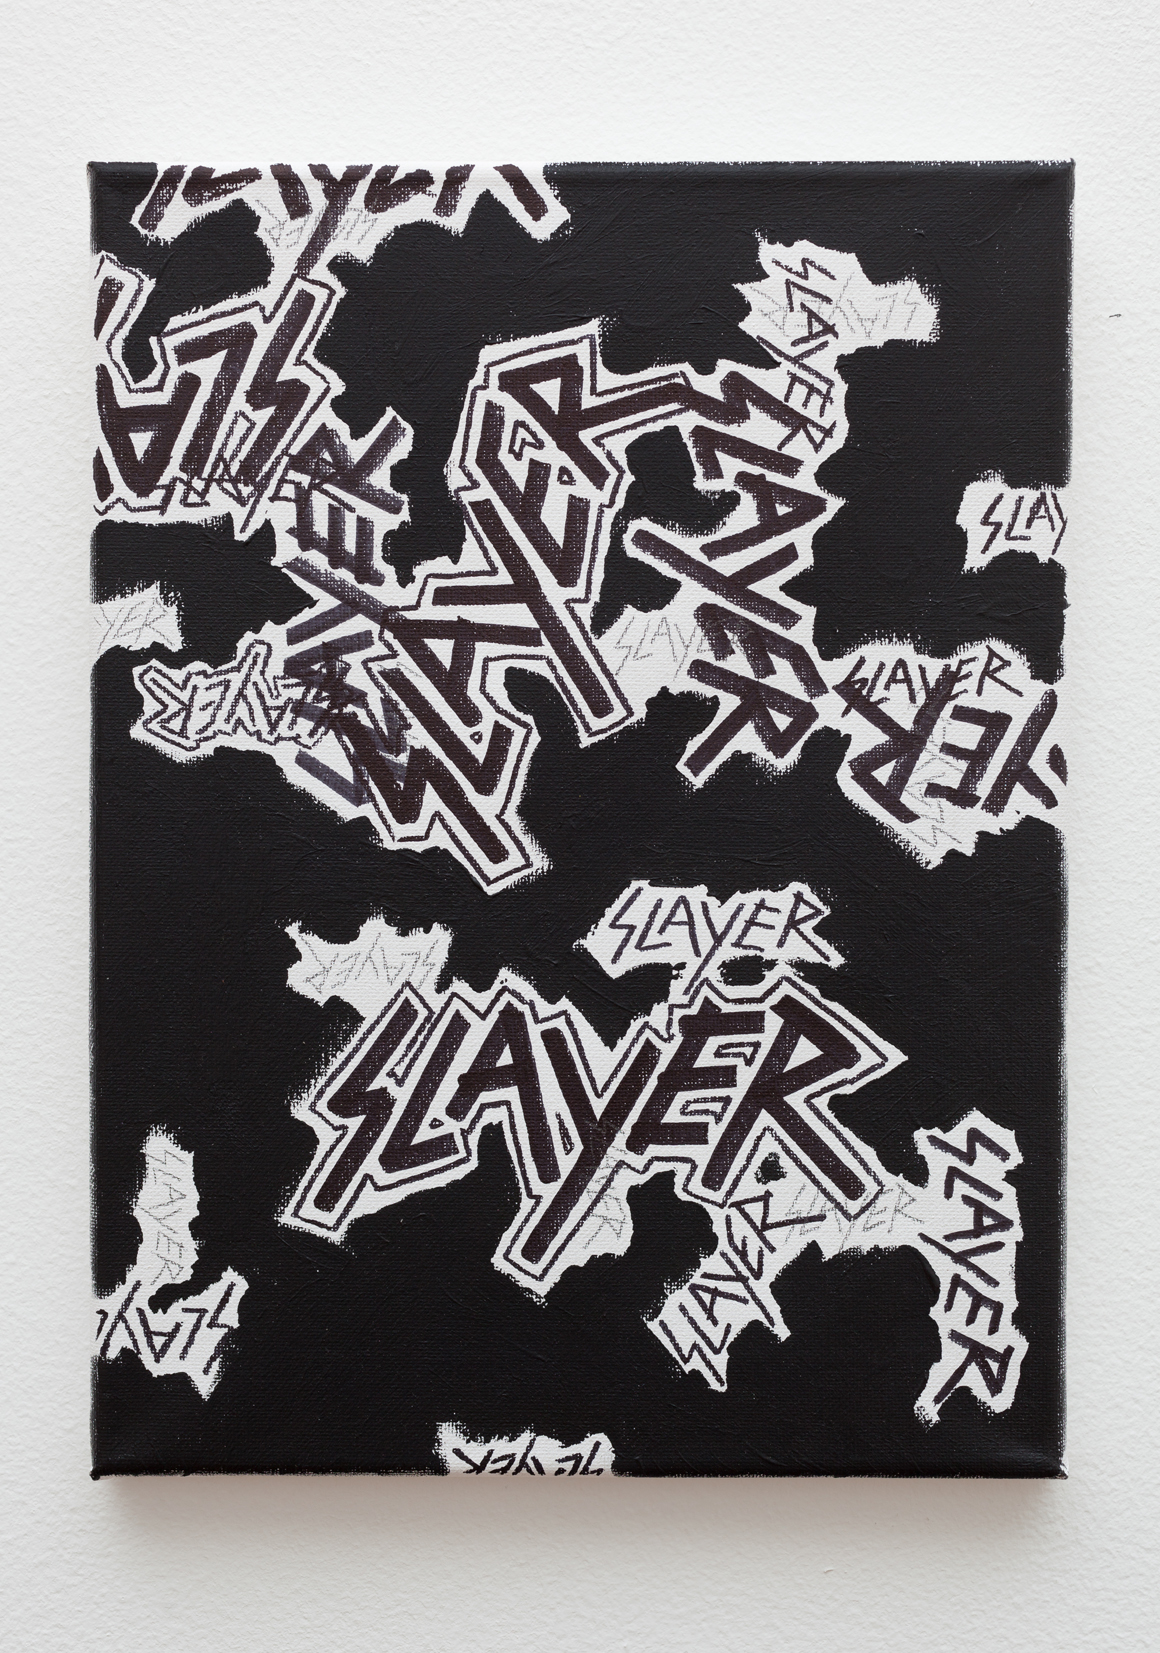 "<p><span class=""name"">Zach Reini</span><br><em>Slayer</em><span class='media'>Sharpie, graphite, latex on canvas</span>12 x 9 in  (30.5 x 22.9 cm)<br>2015<br><a class='inquire' href='mailto:info@gildargallery.com?subject=Artwork Inquiry ZREI0028&body=I am interested in finding out more about Slayer by Zach Reini'>Inquire</a></p>"